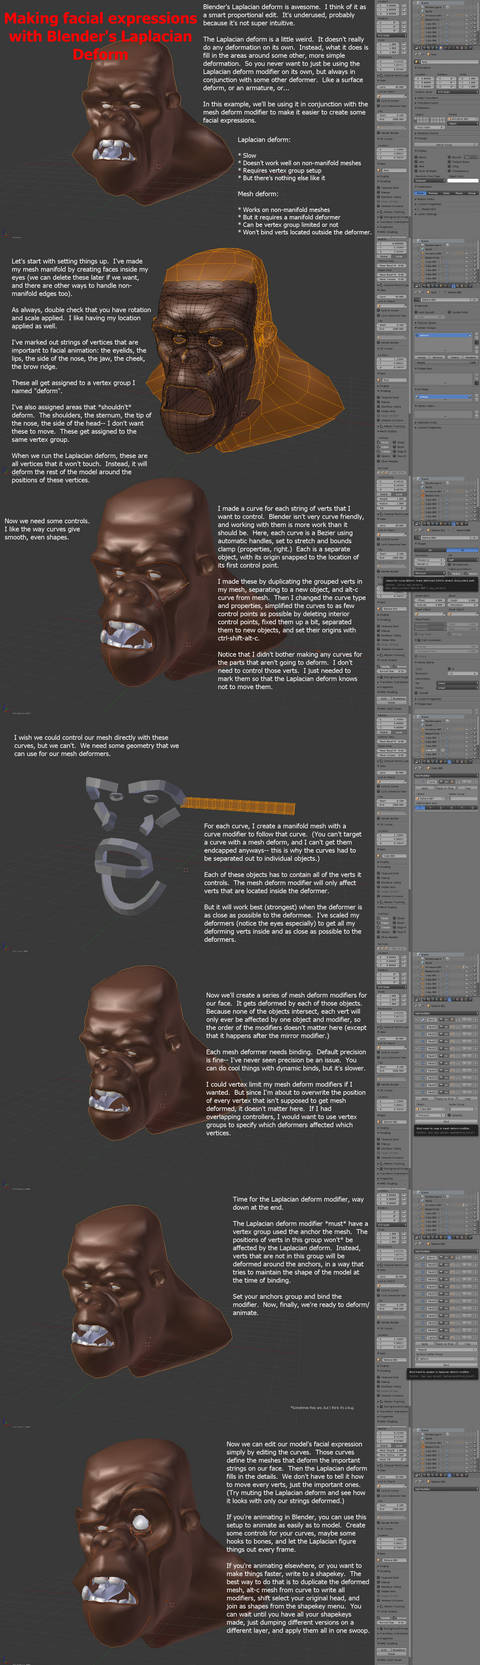 Making facials with Blender's Laplacian deform